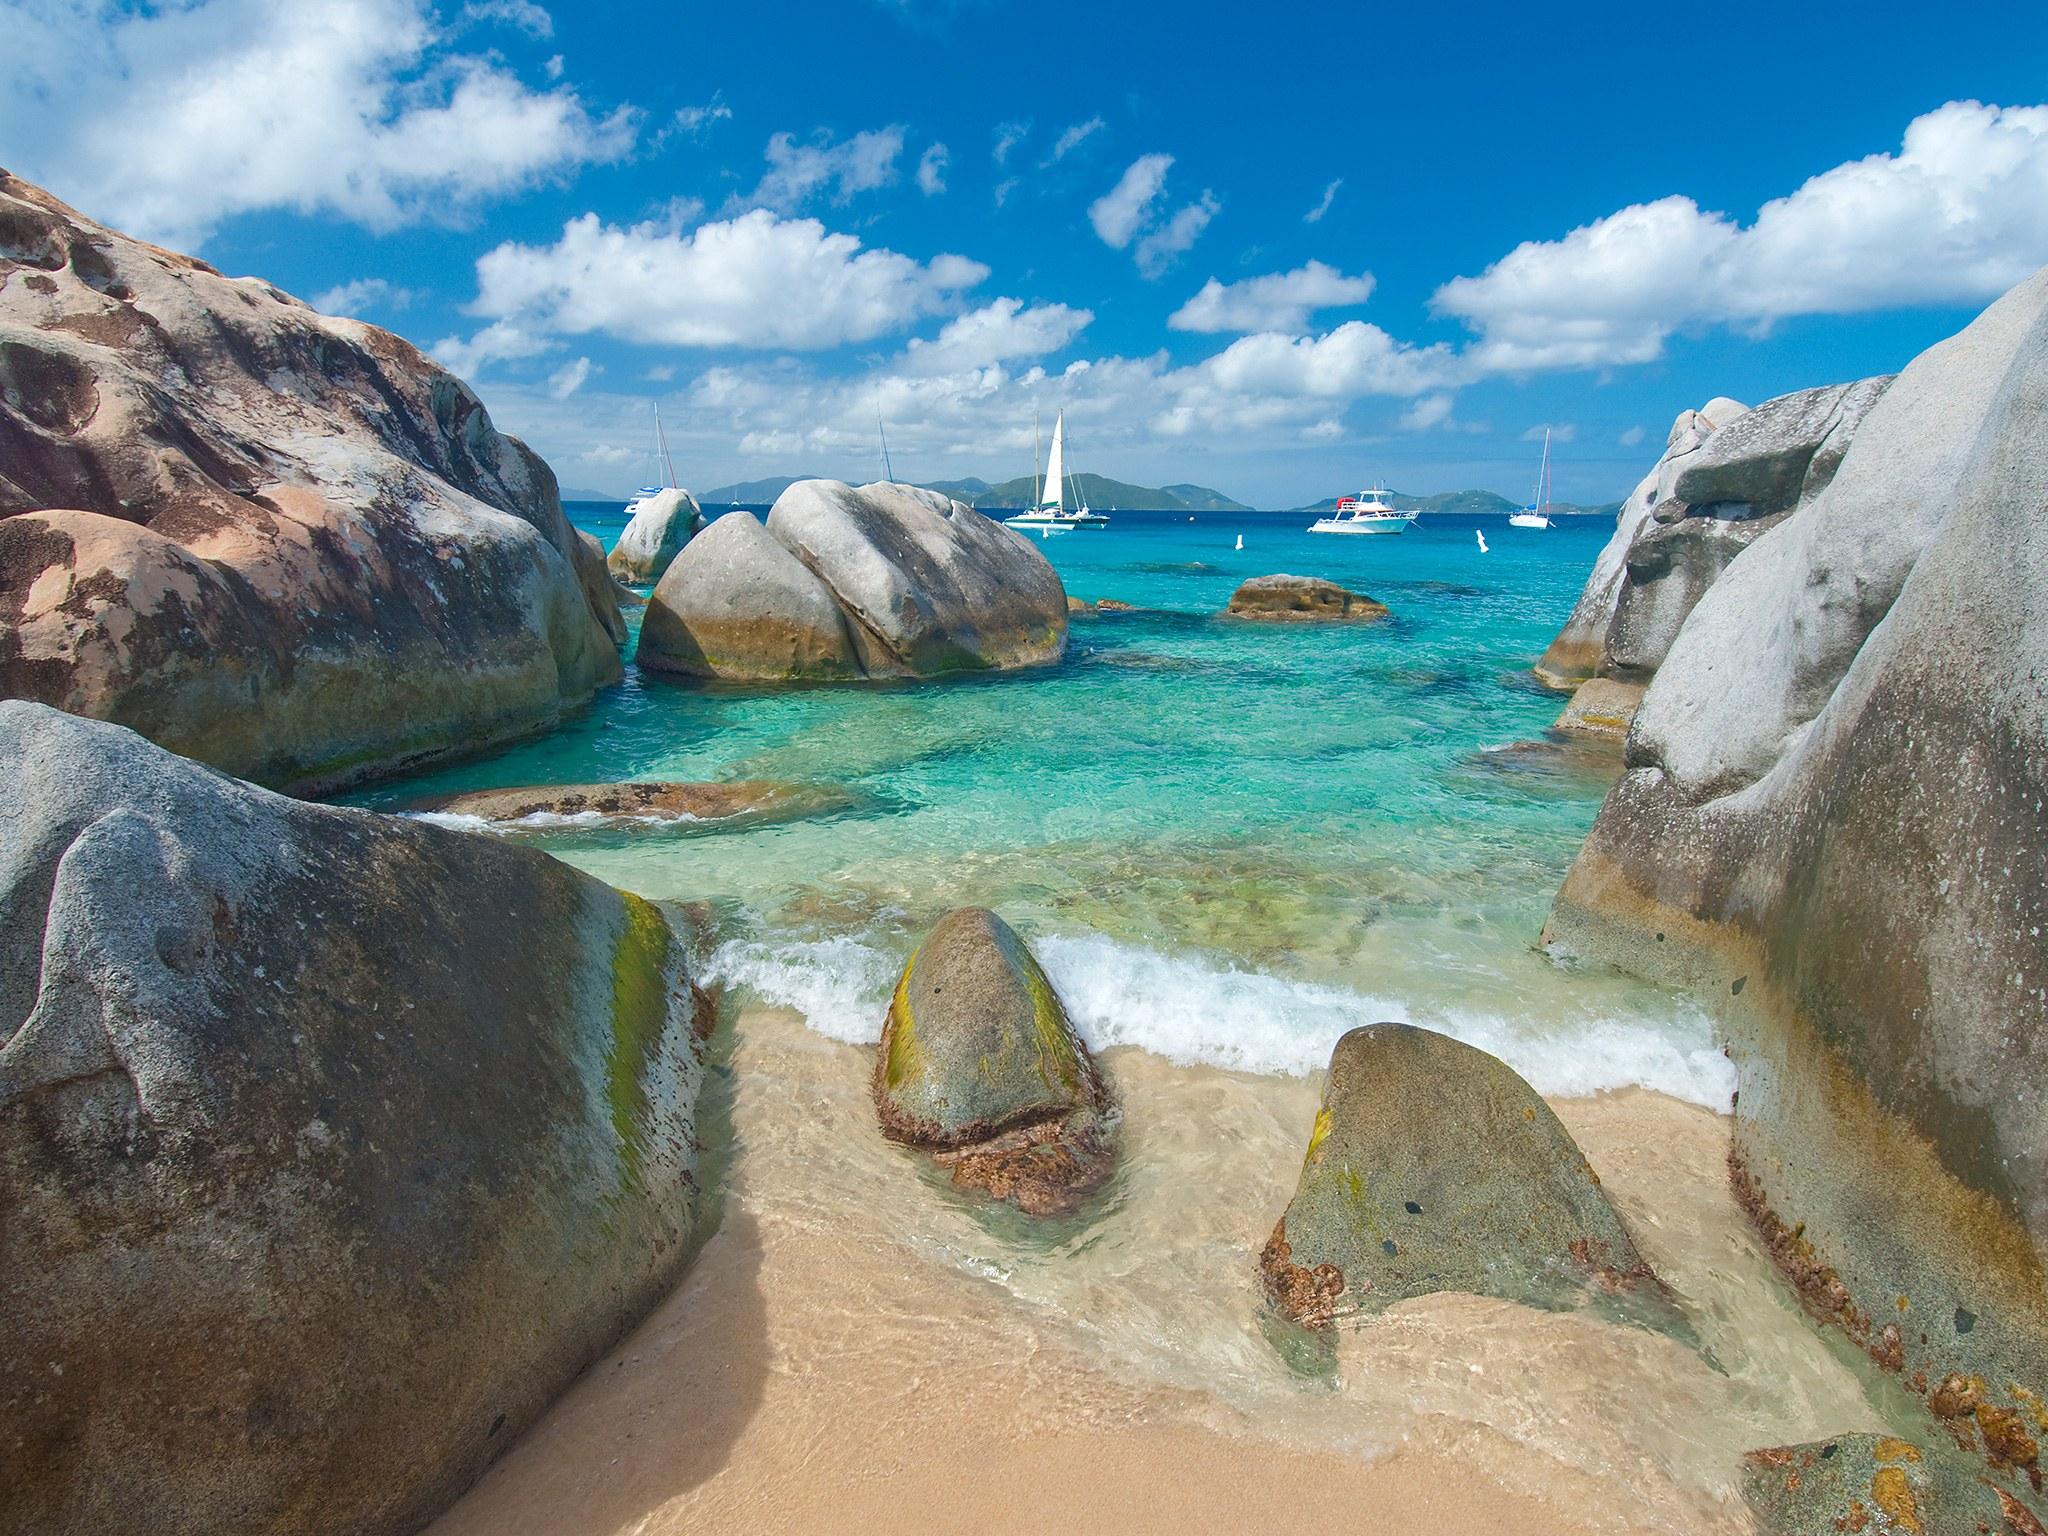 The Most Beautiful Islands in the Caribbean - Condé Nast Traveler